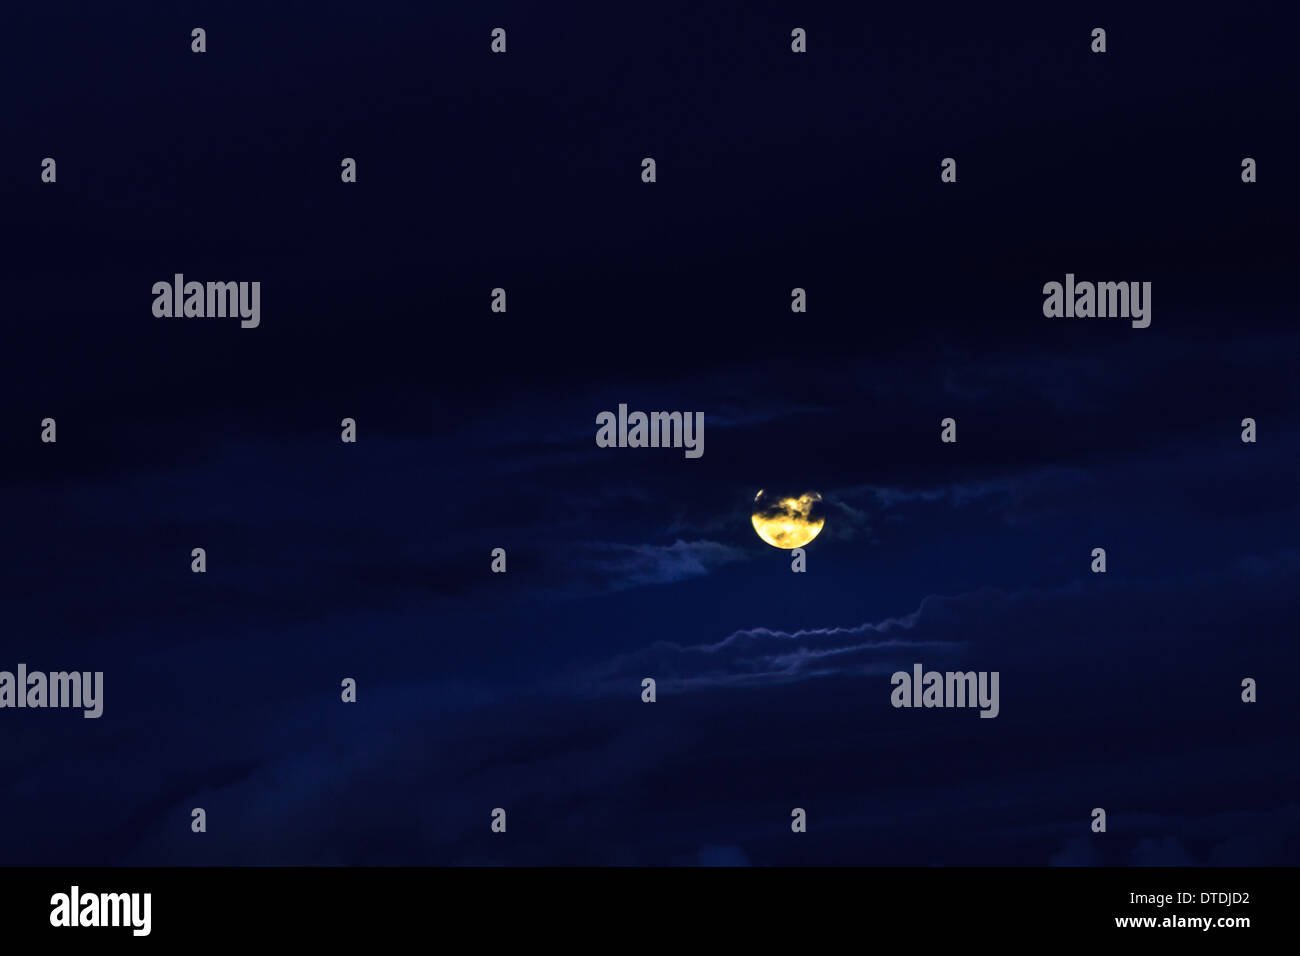 Full yellow moon in a deep blue cloudy night sky - Stock Image